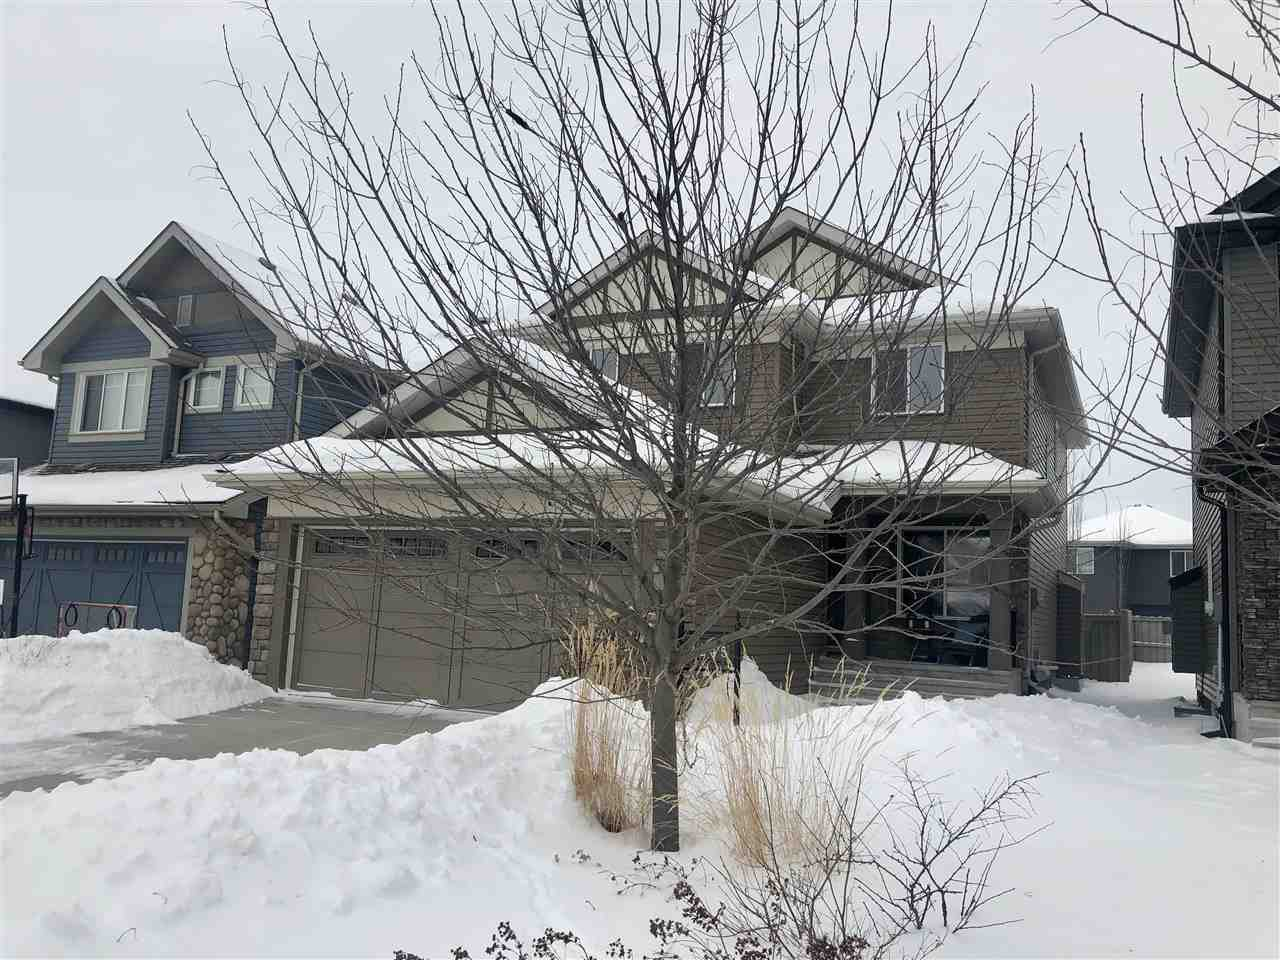 Main Photo: 3245 WHITELAW Drive in Edmonton: Zone 56 House for sale : MLS®# E4187426